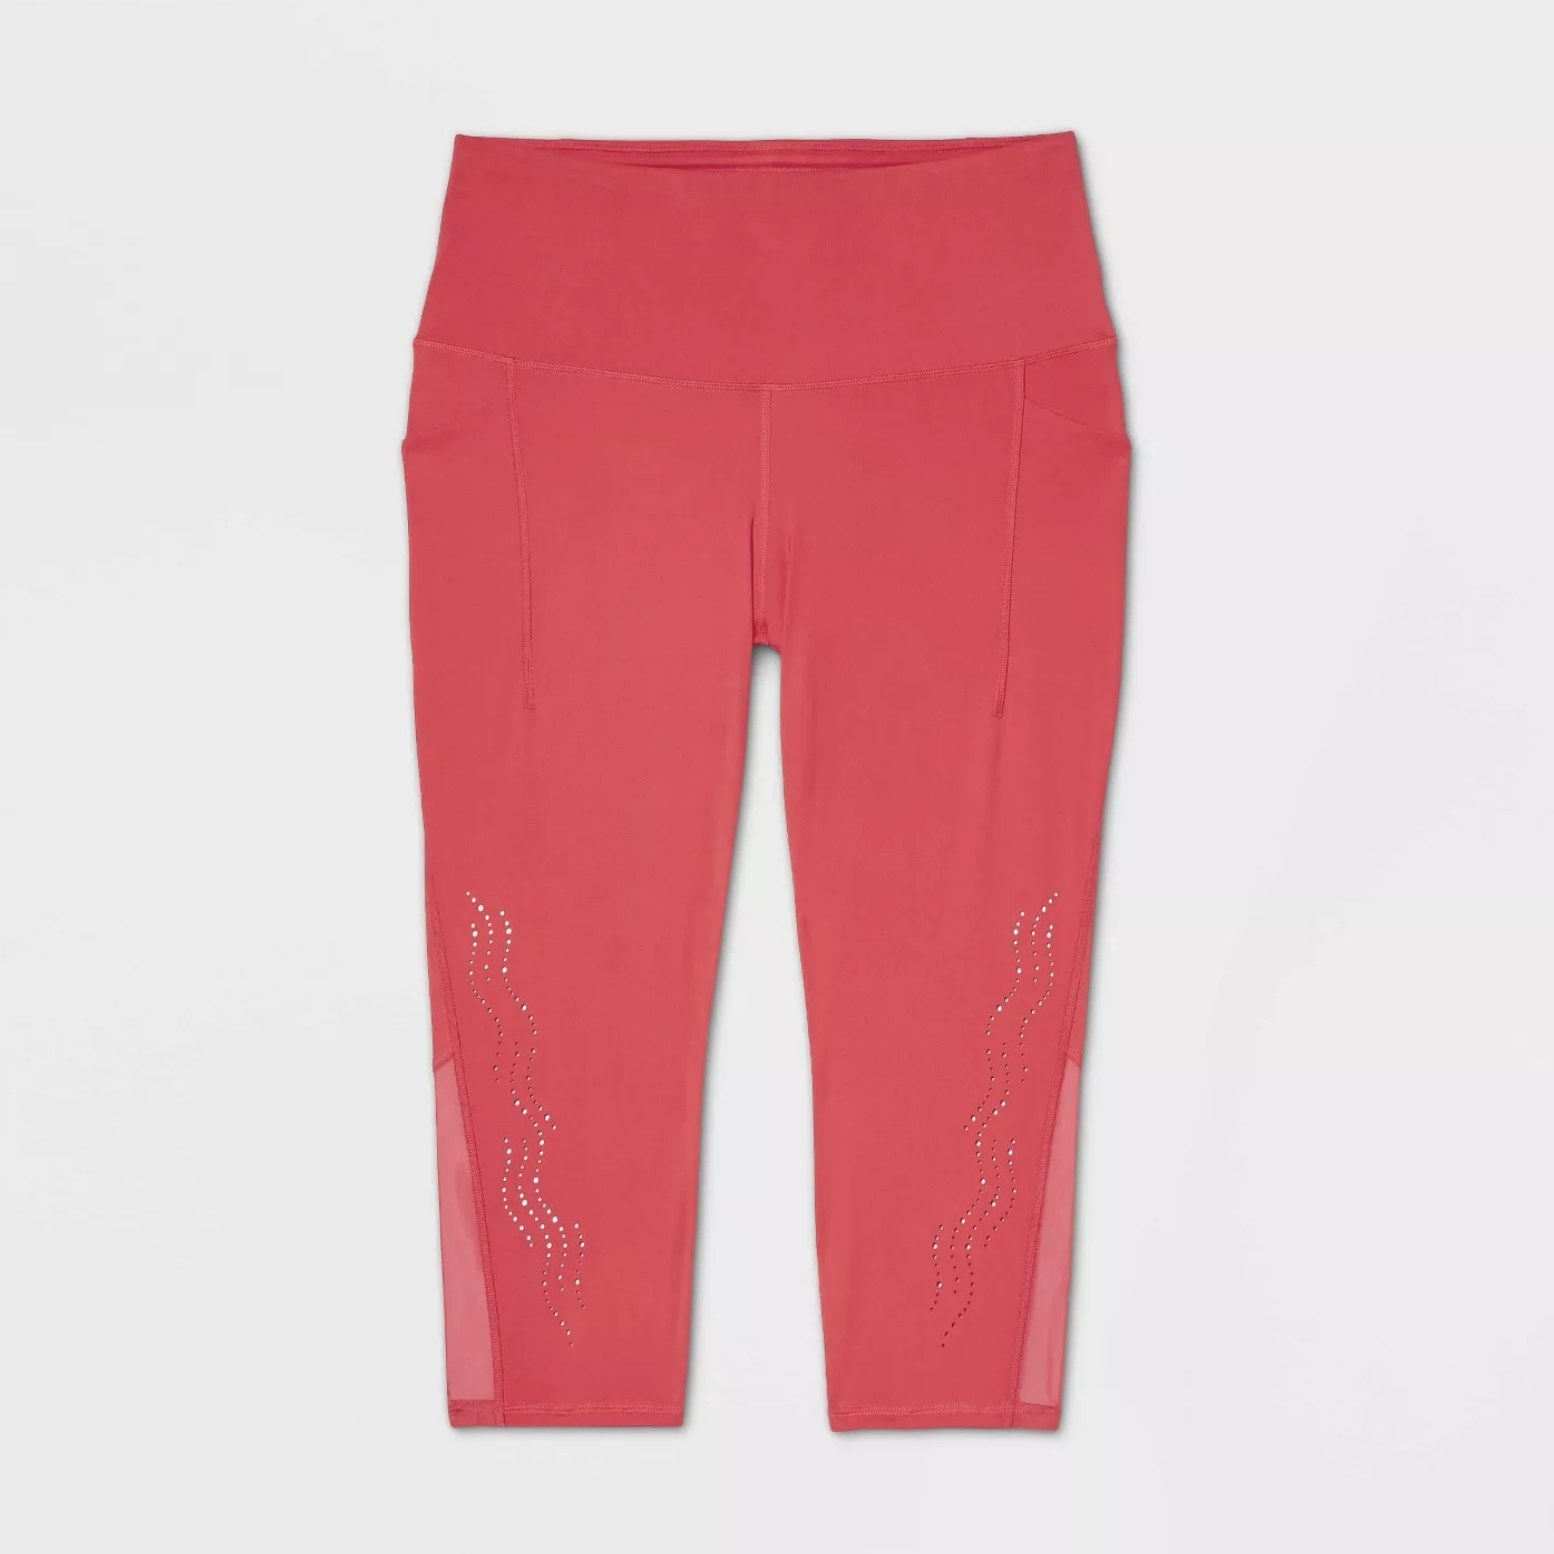 red high-waisted capri leggings with a laser-cut design and mesh on the calves